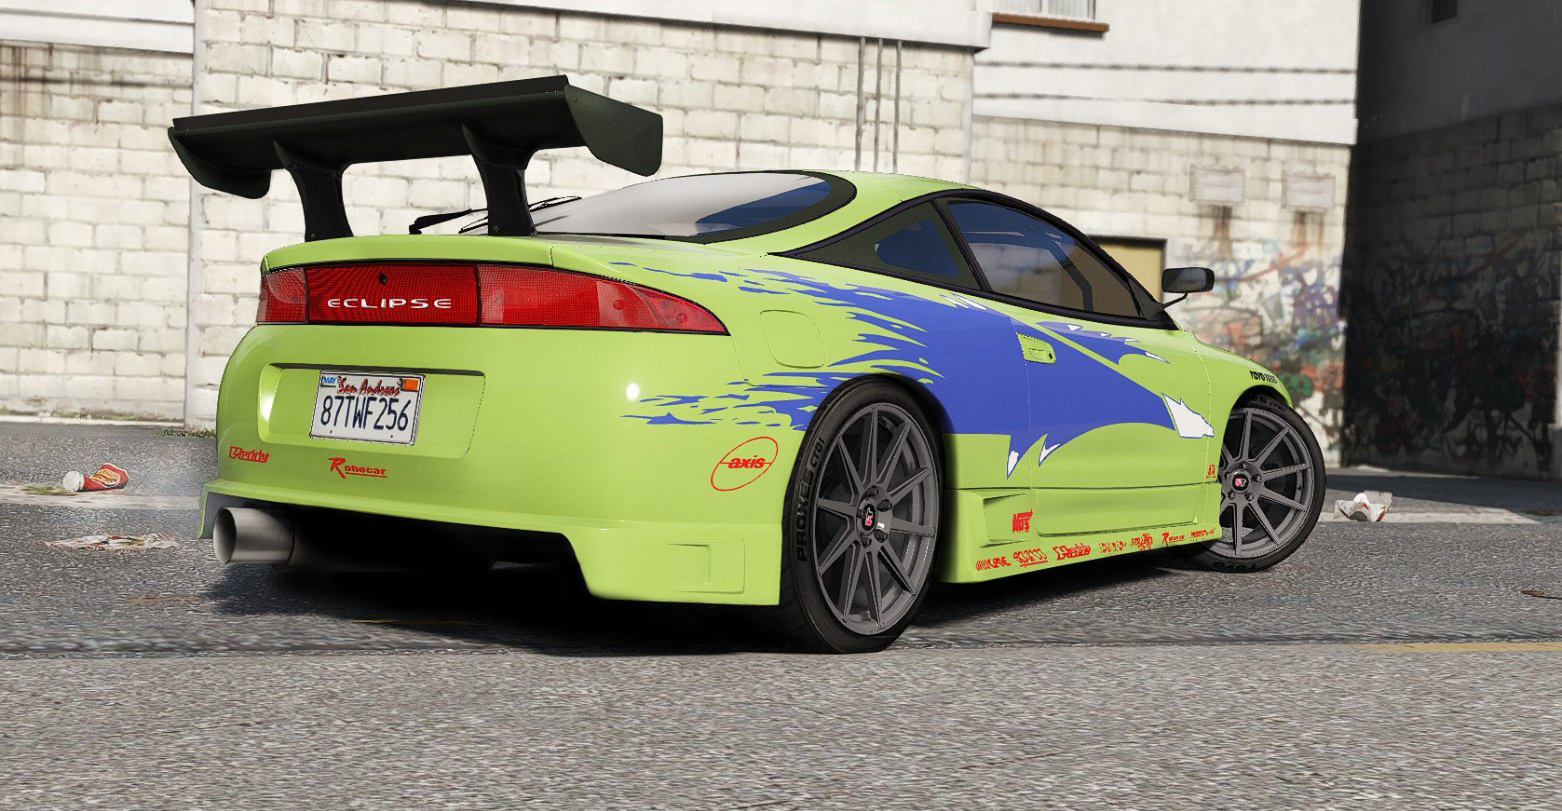 Gta 5 Toyota Supra >> 1995 Mitsubishi Eclipse GSX The Fast and the Furious - GTA5-Mods.com